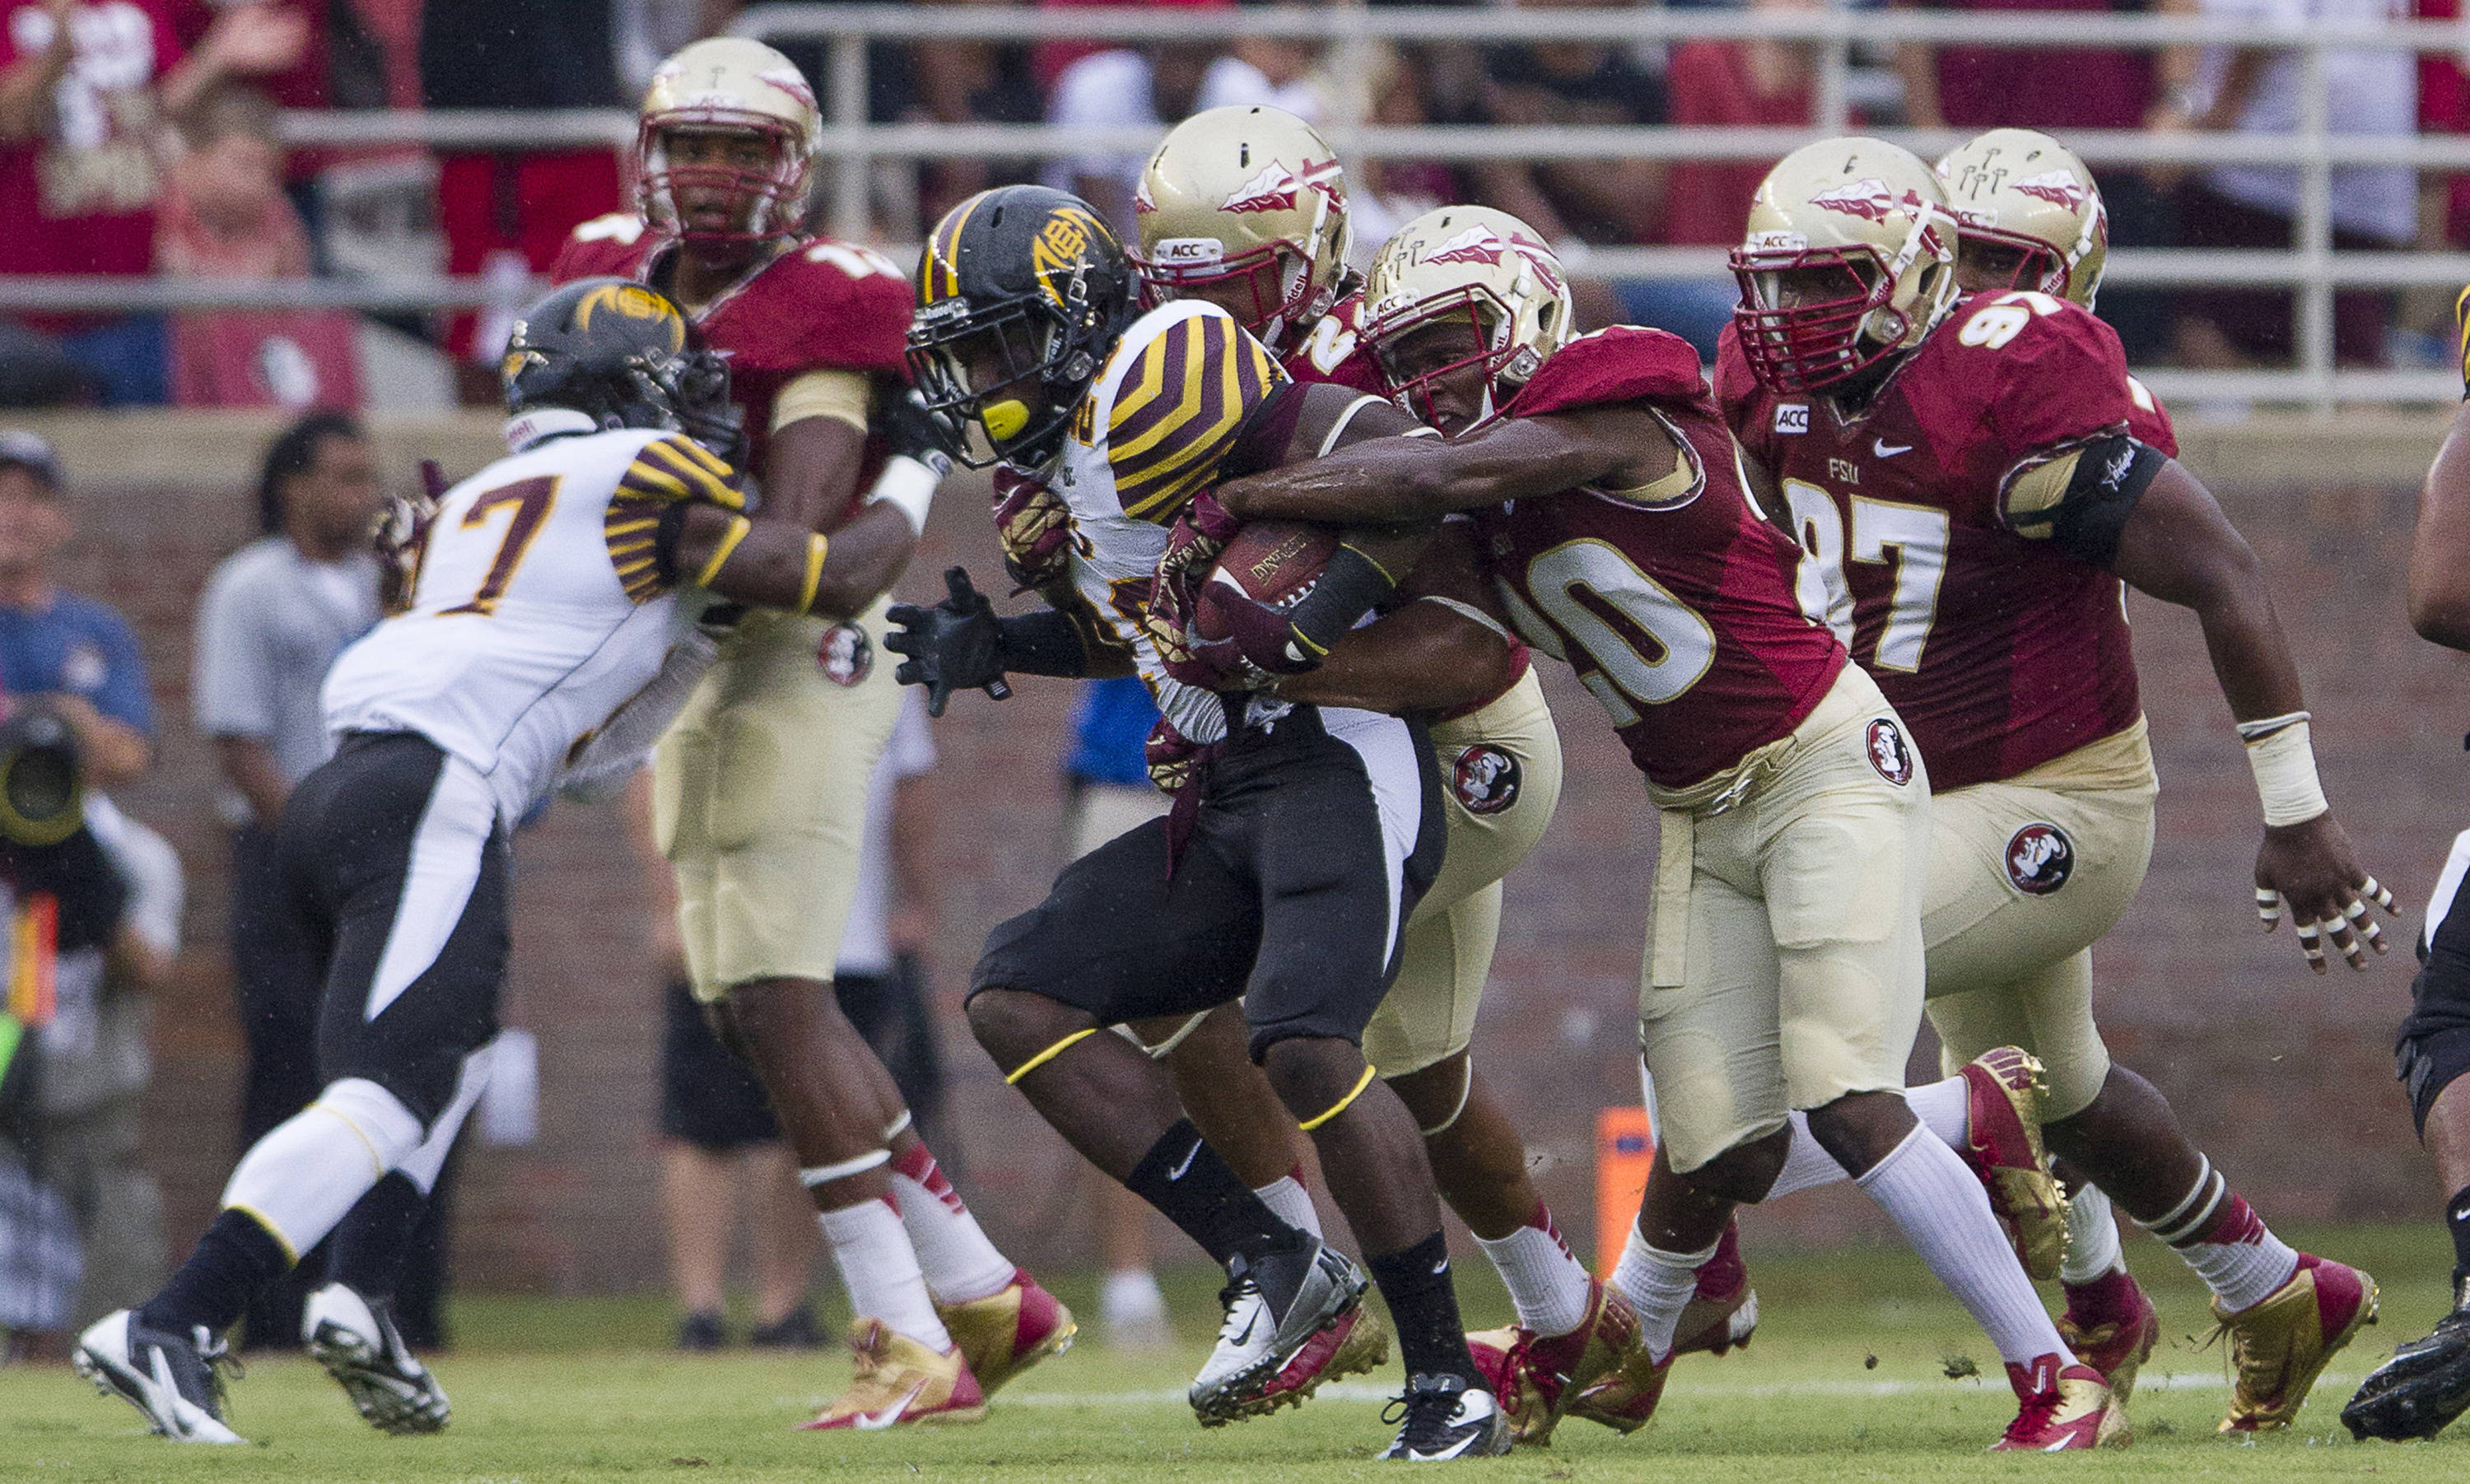 Lamarcus Joyner (20) attempts to strip the ball during FSU Football's 54-6 win over Bethune-Cookman on September 21, 2013 in Tallahassee, Fla